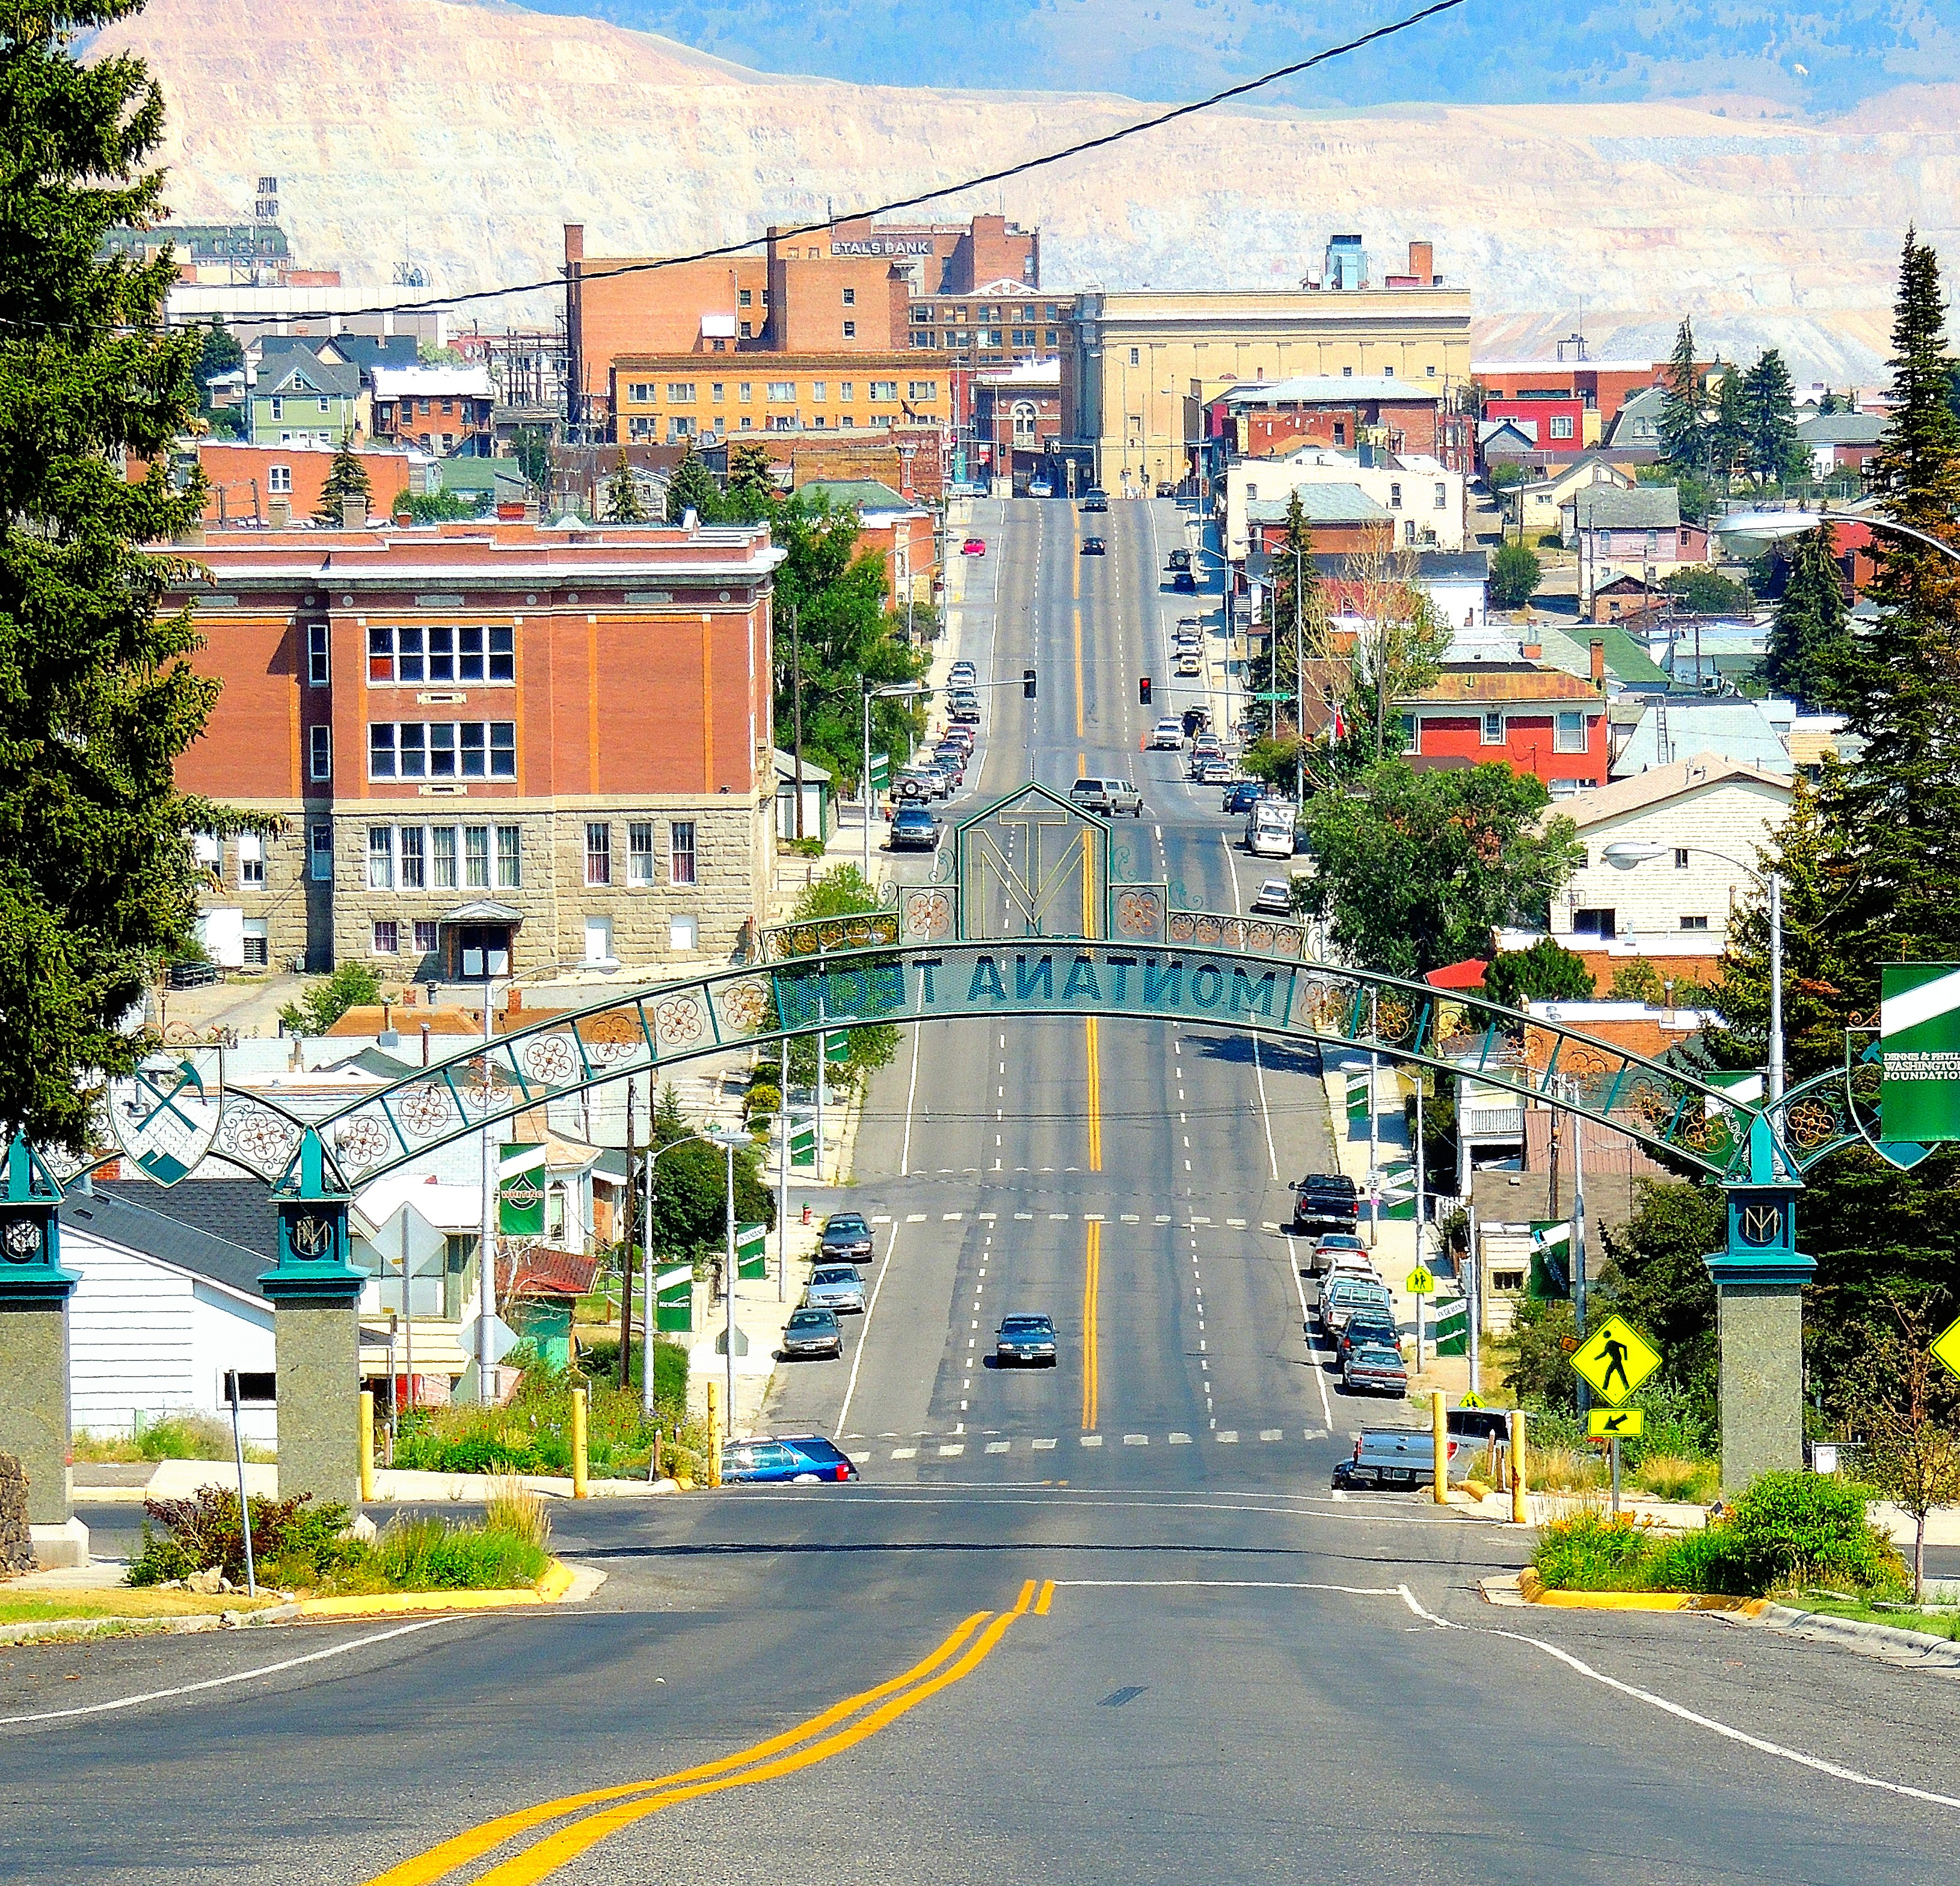 Image of Butte, Montana credited to Tracy from Calgary, Alberta [CC BY (https://creativecommons.org/licenses/by/2.0)]